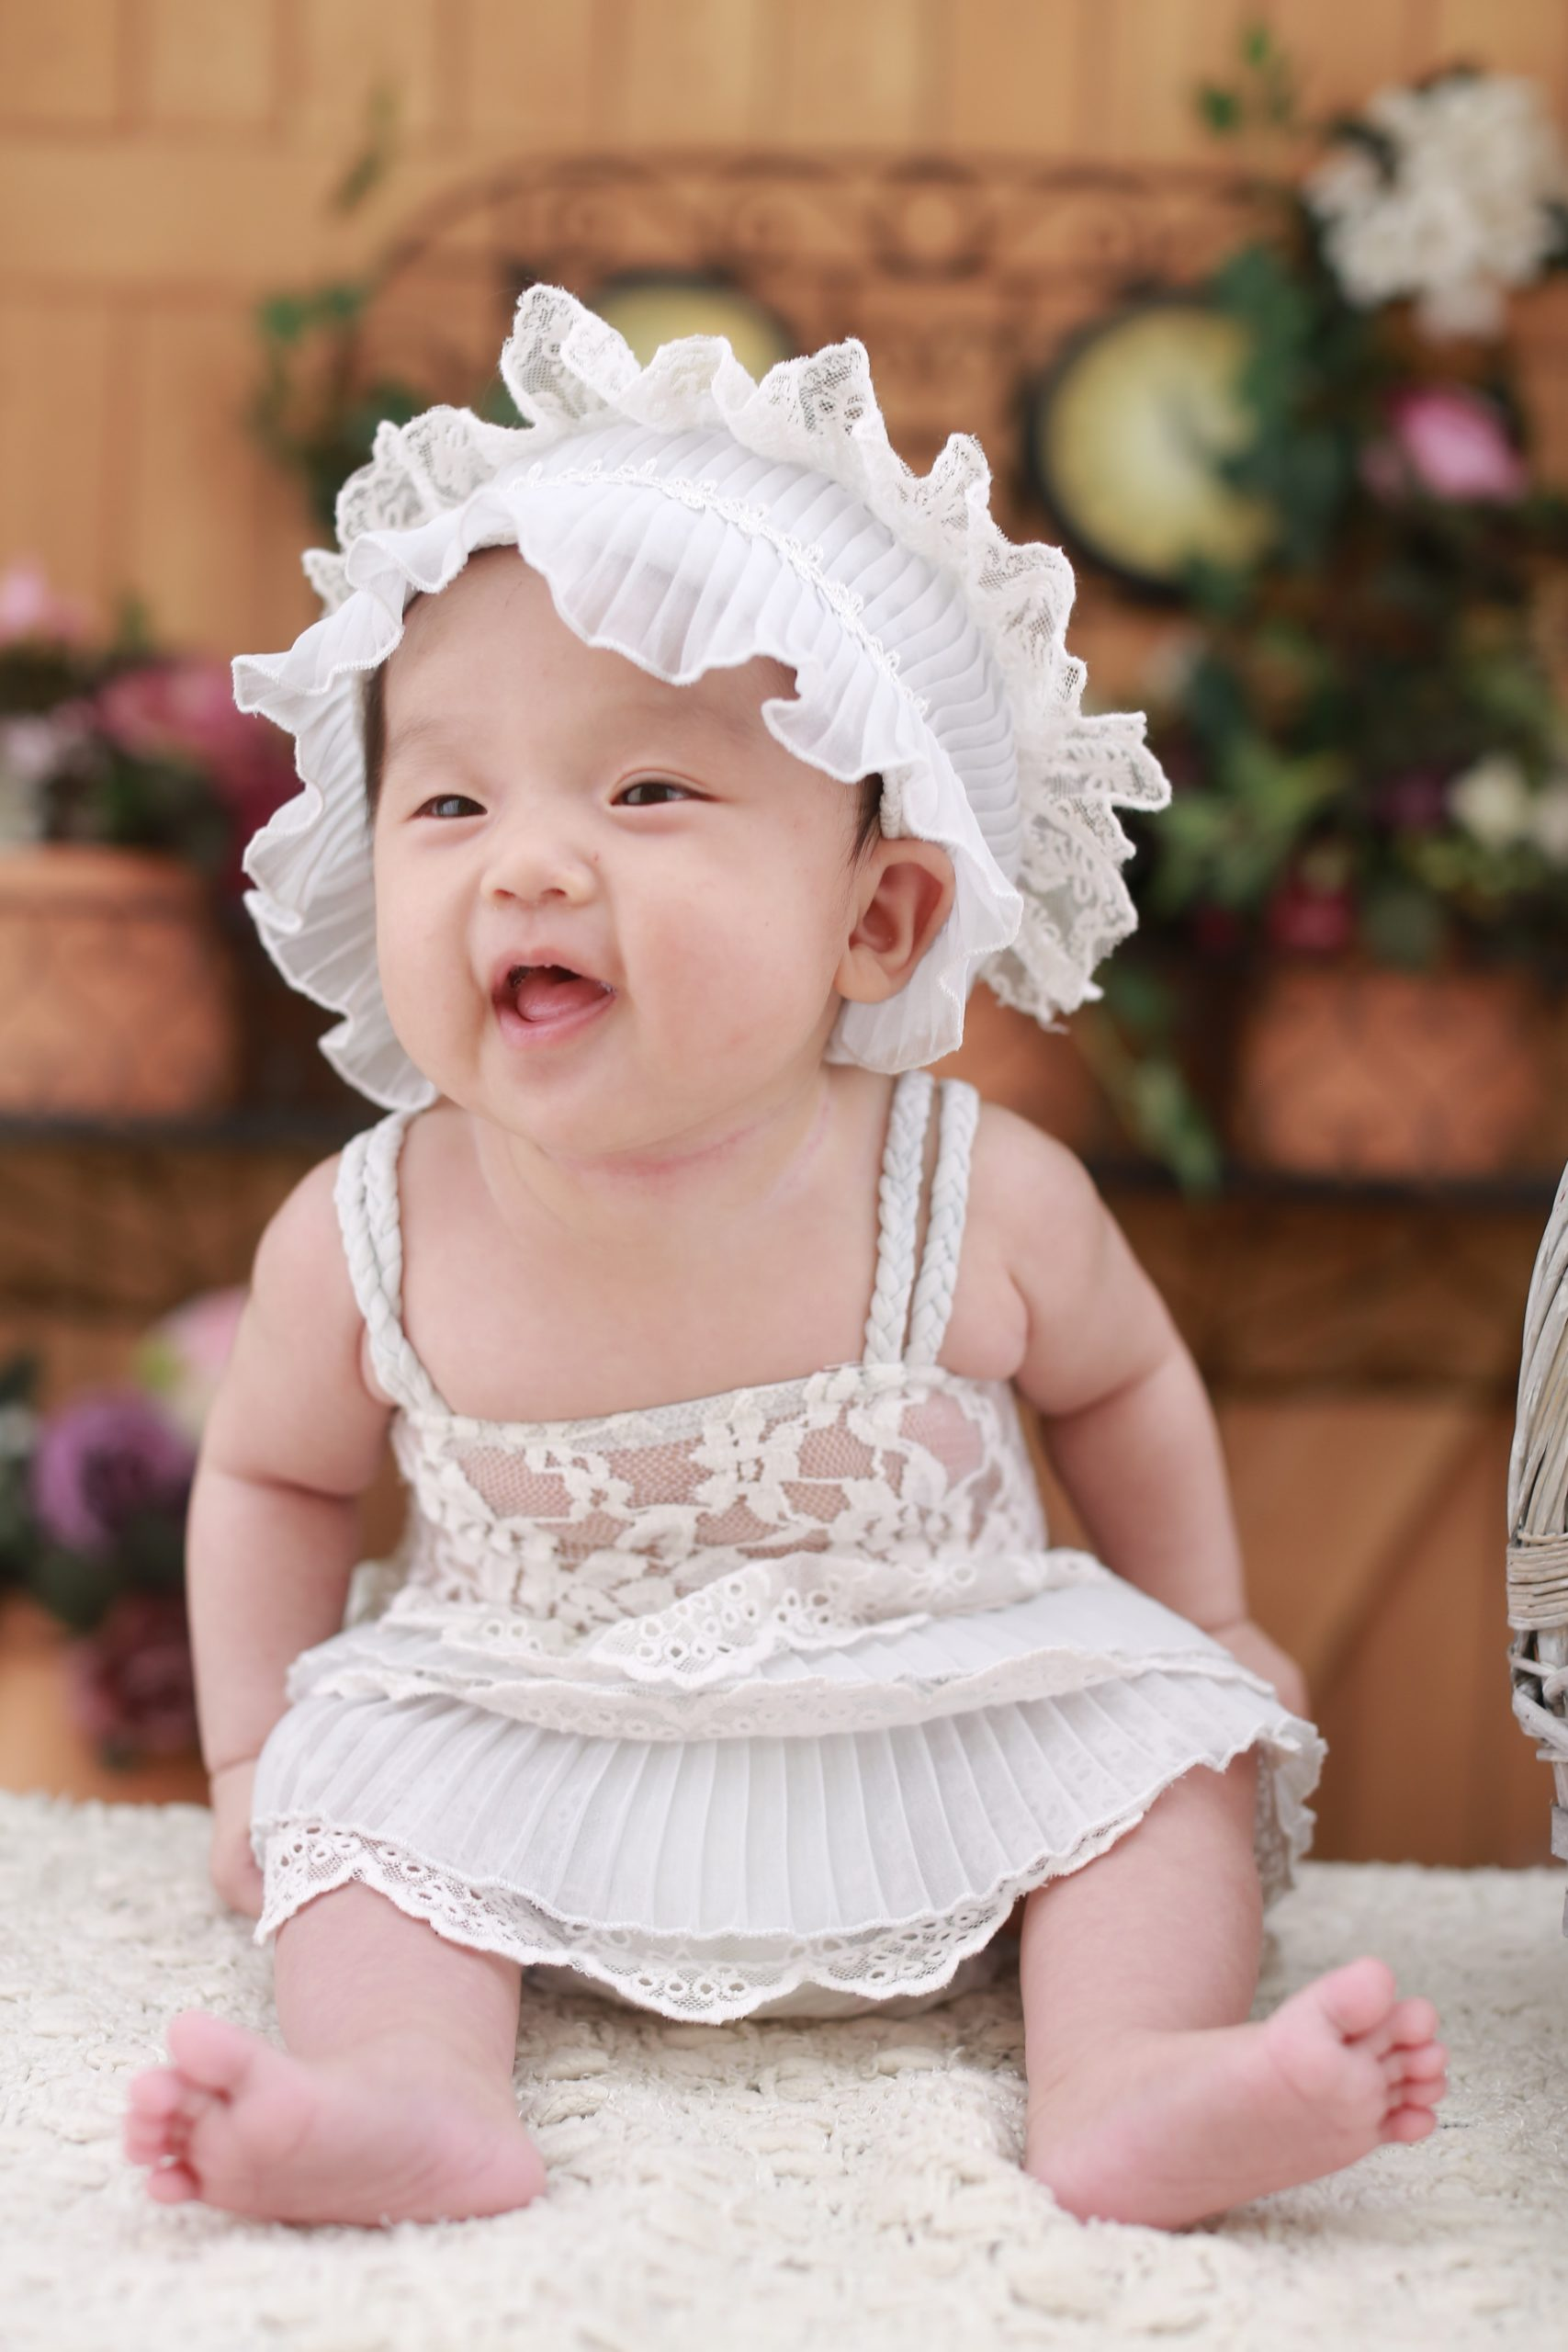 A sitting baby is dressed in a pinkish dress and a frilly lace bonnet.